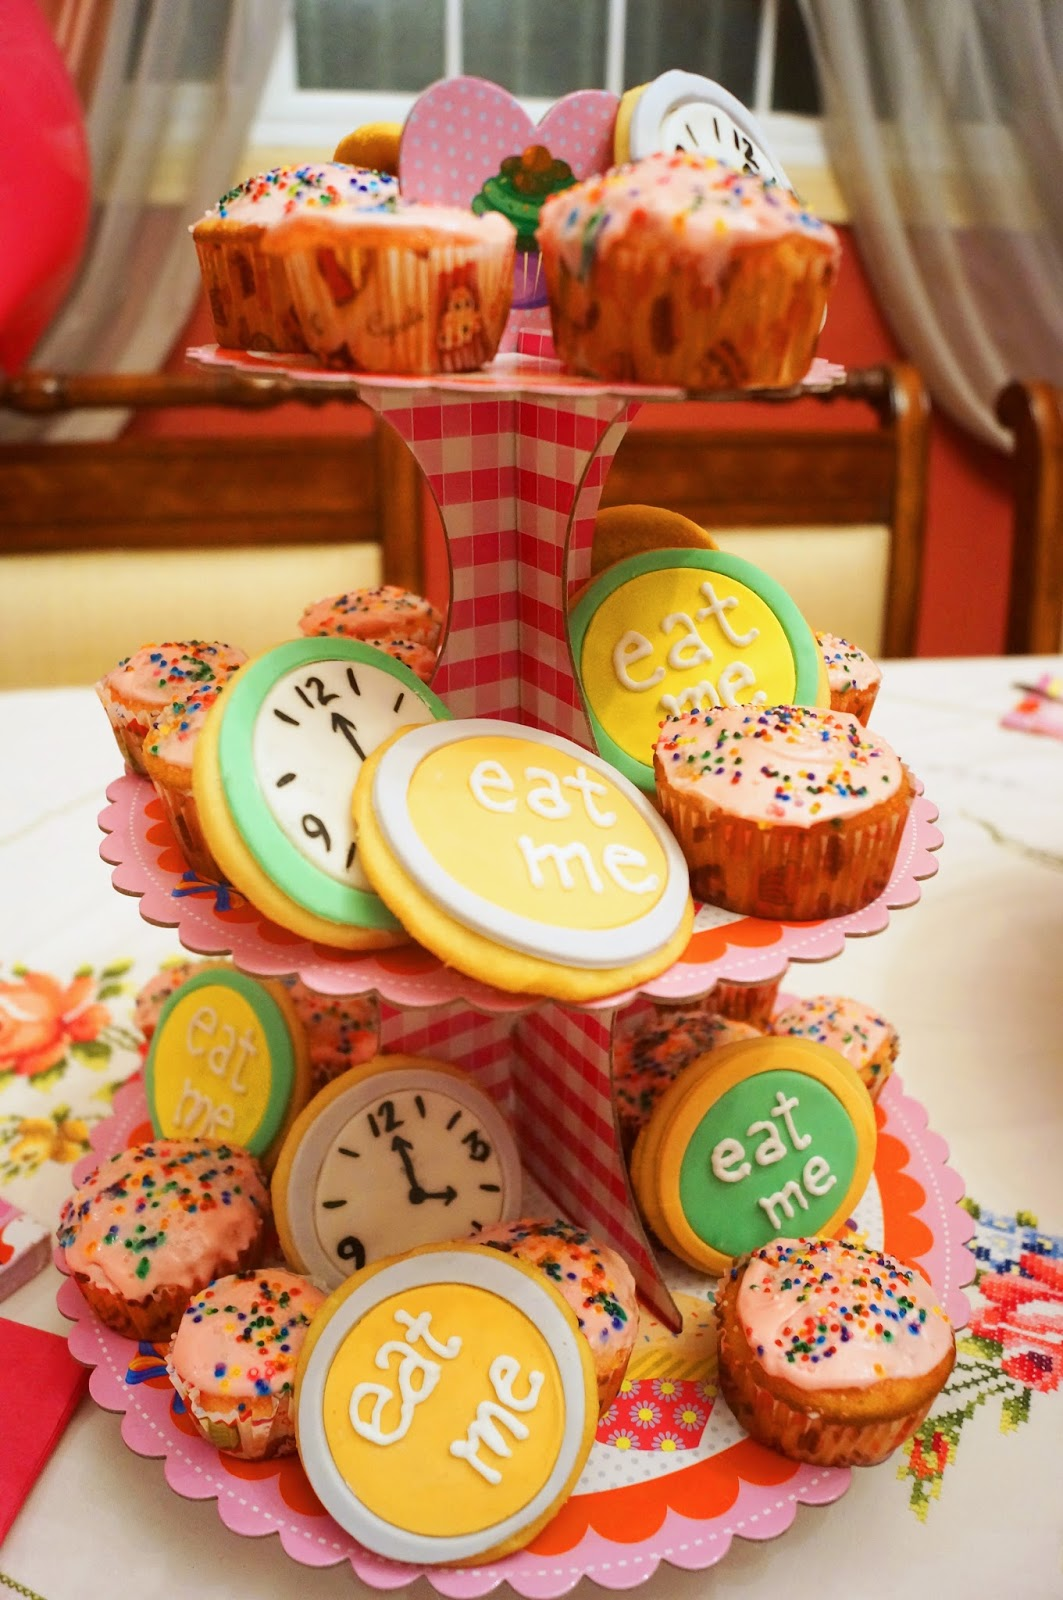 Cute desserts for an Alice in Wonderland Party